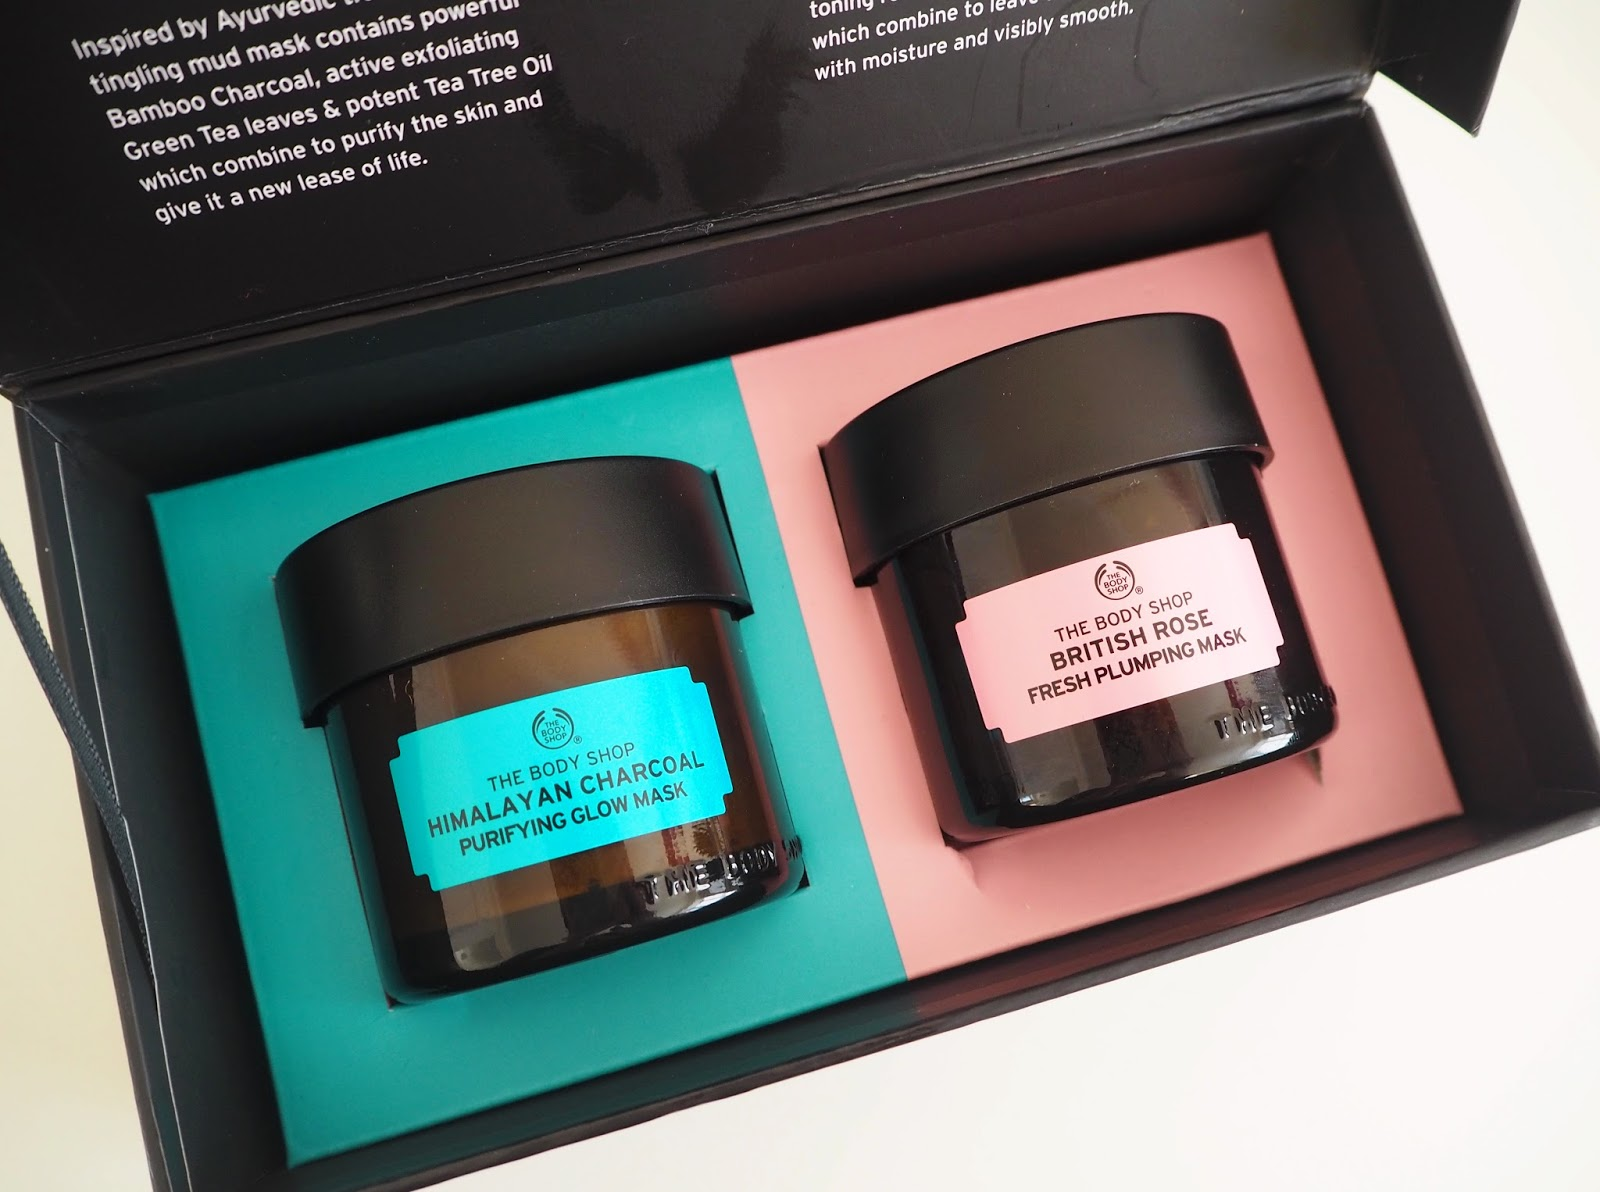 What I Got For Christmas 2016, Katie Kirk Loves, The Body Shop Face Masks, Christmas Gifts, Christmas Presents, UK Blogger, Fashion Blogger, Beauty Blogger, Lifestyle Blogger, Present Haul